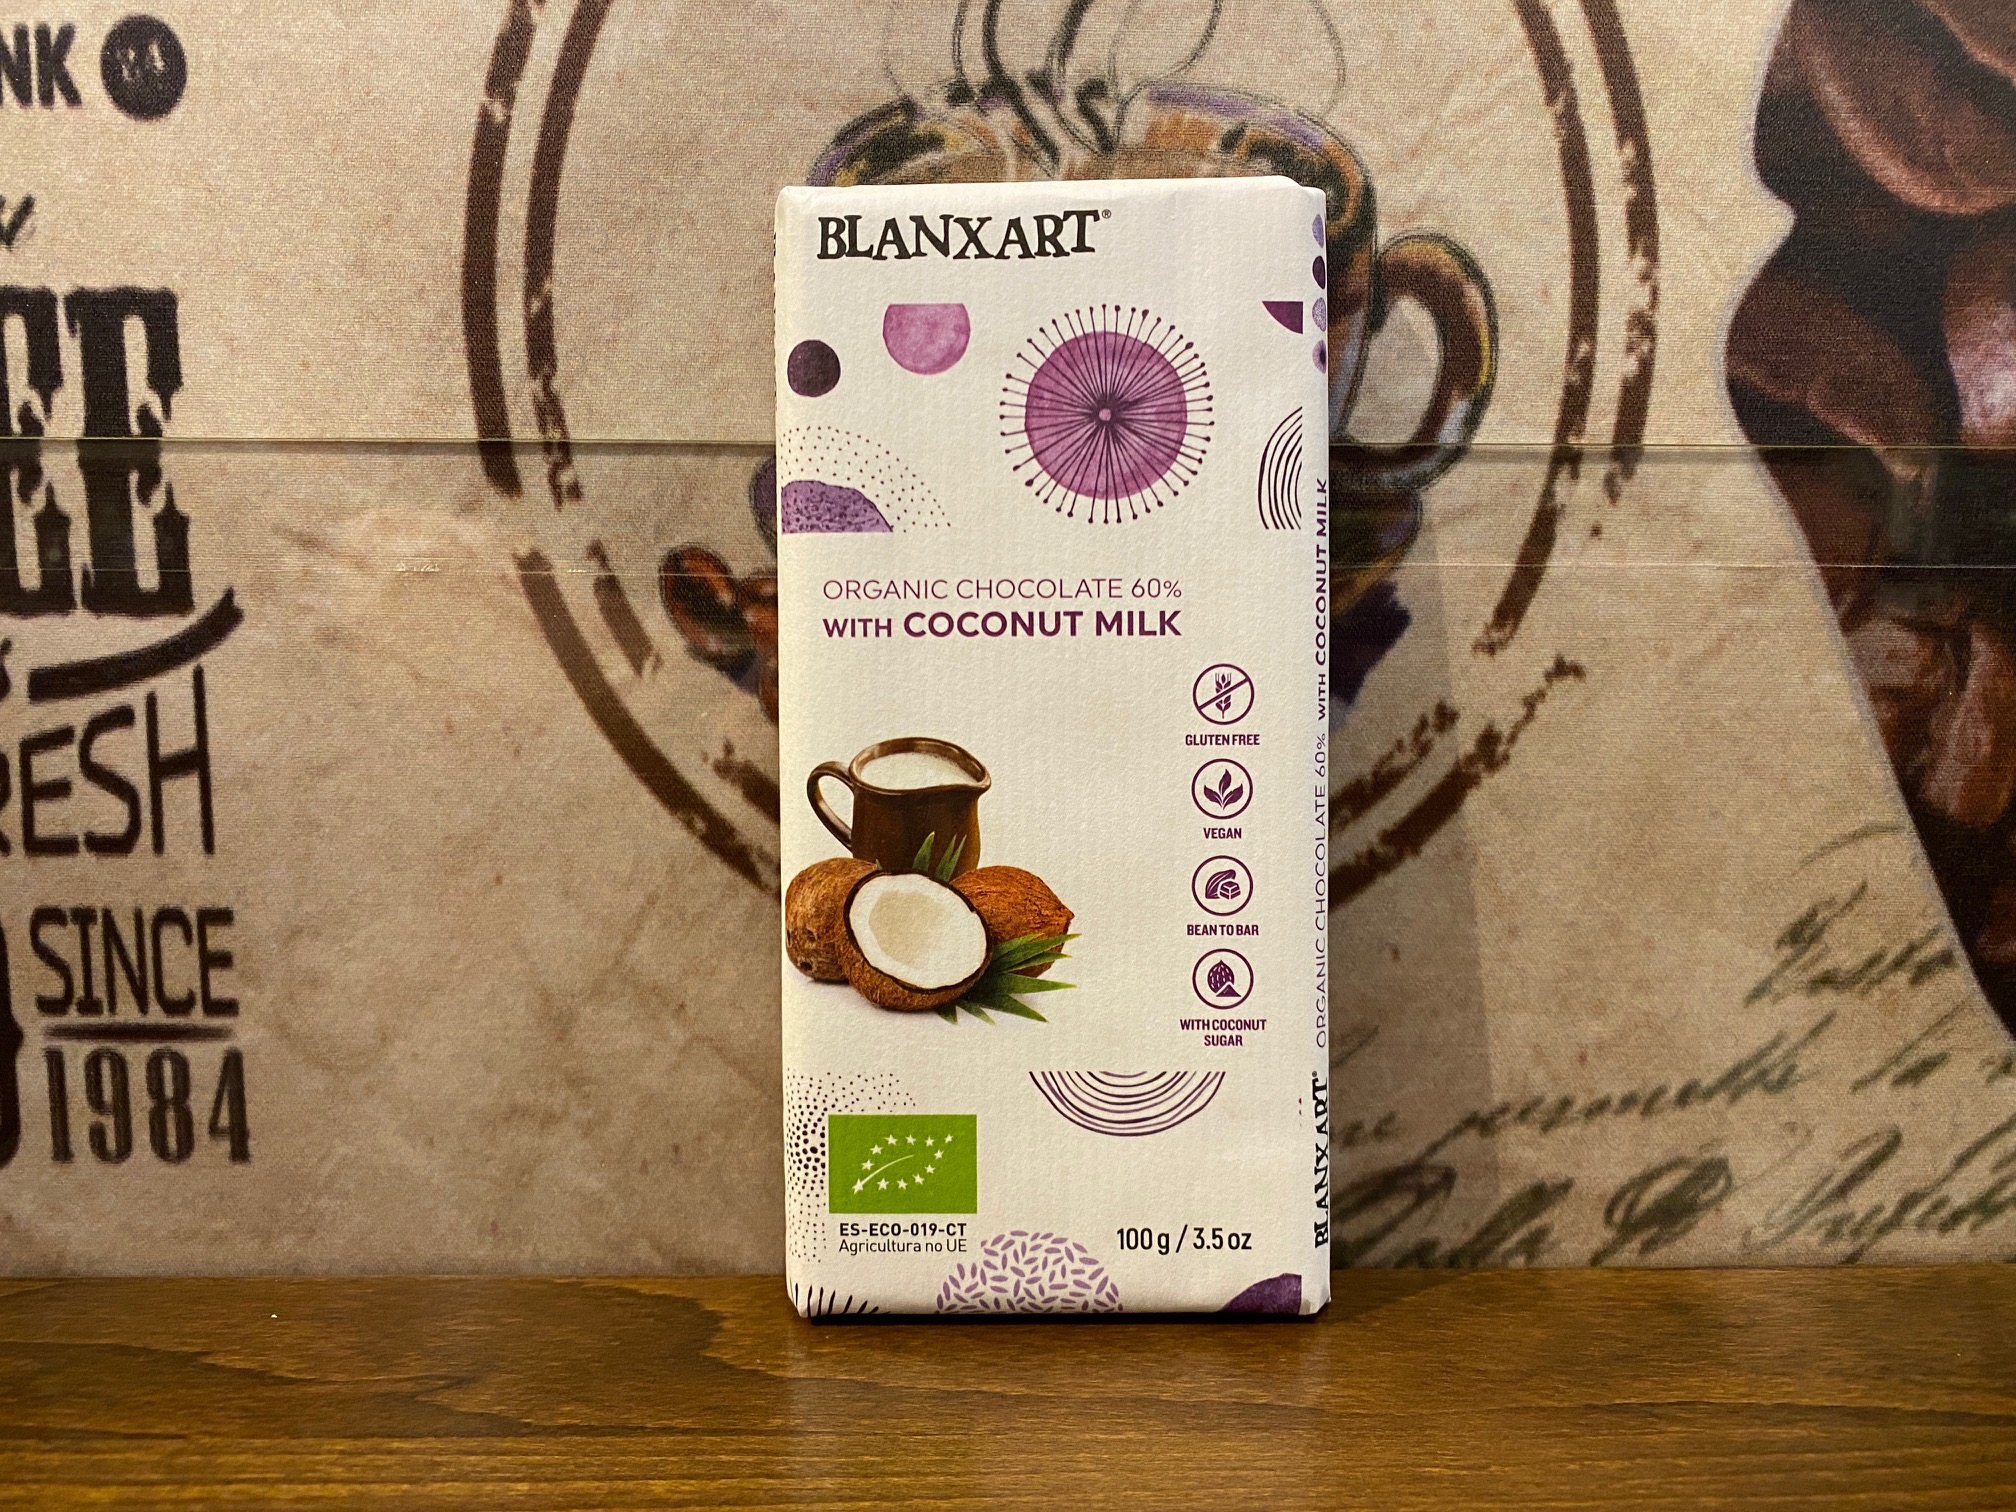 BLANXART Organic Chocolate 60 % with Coconut Milk